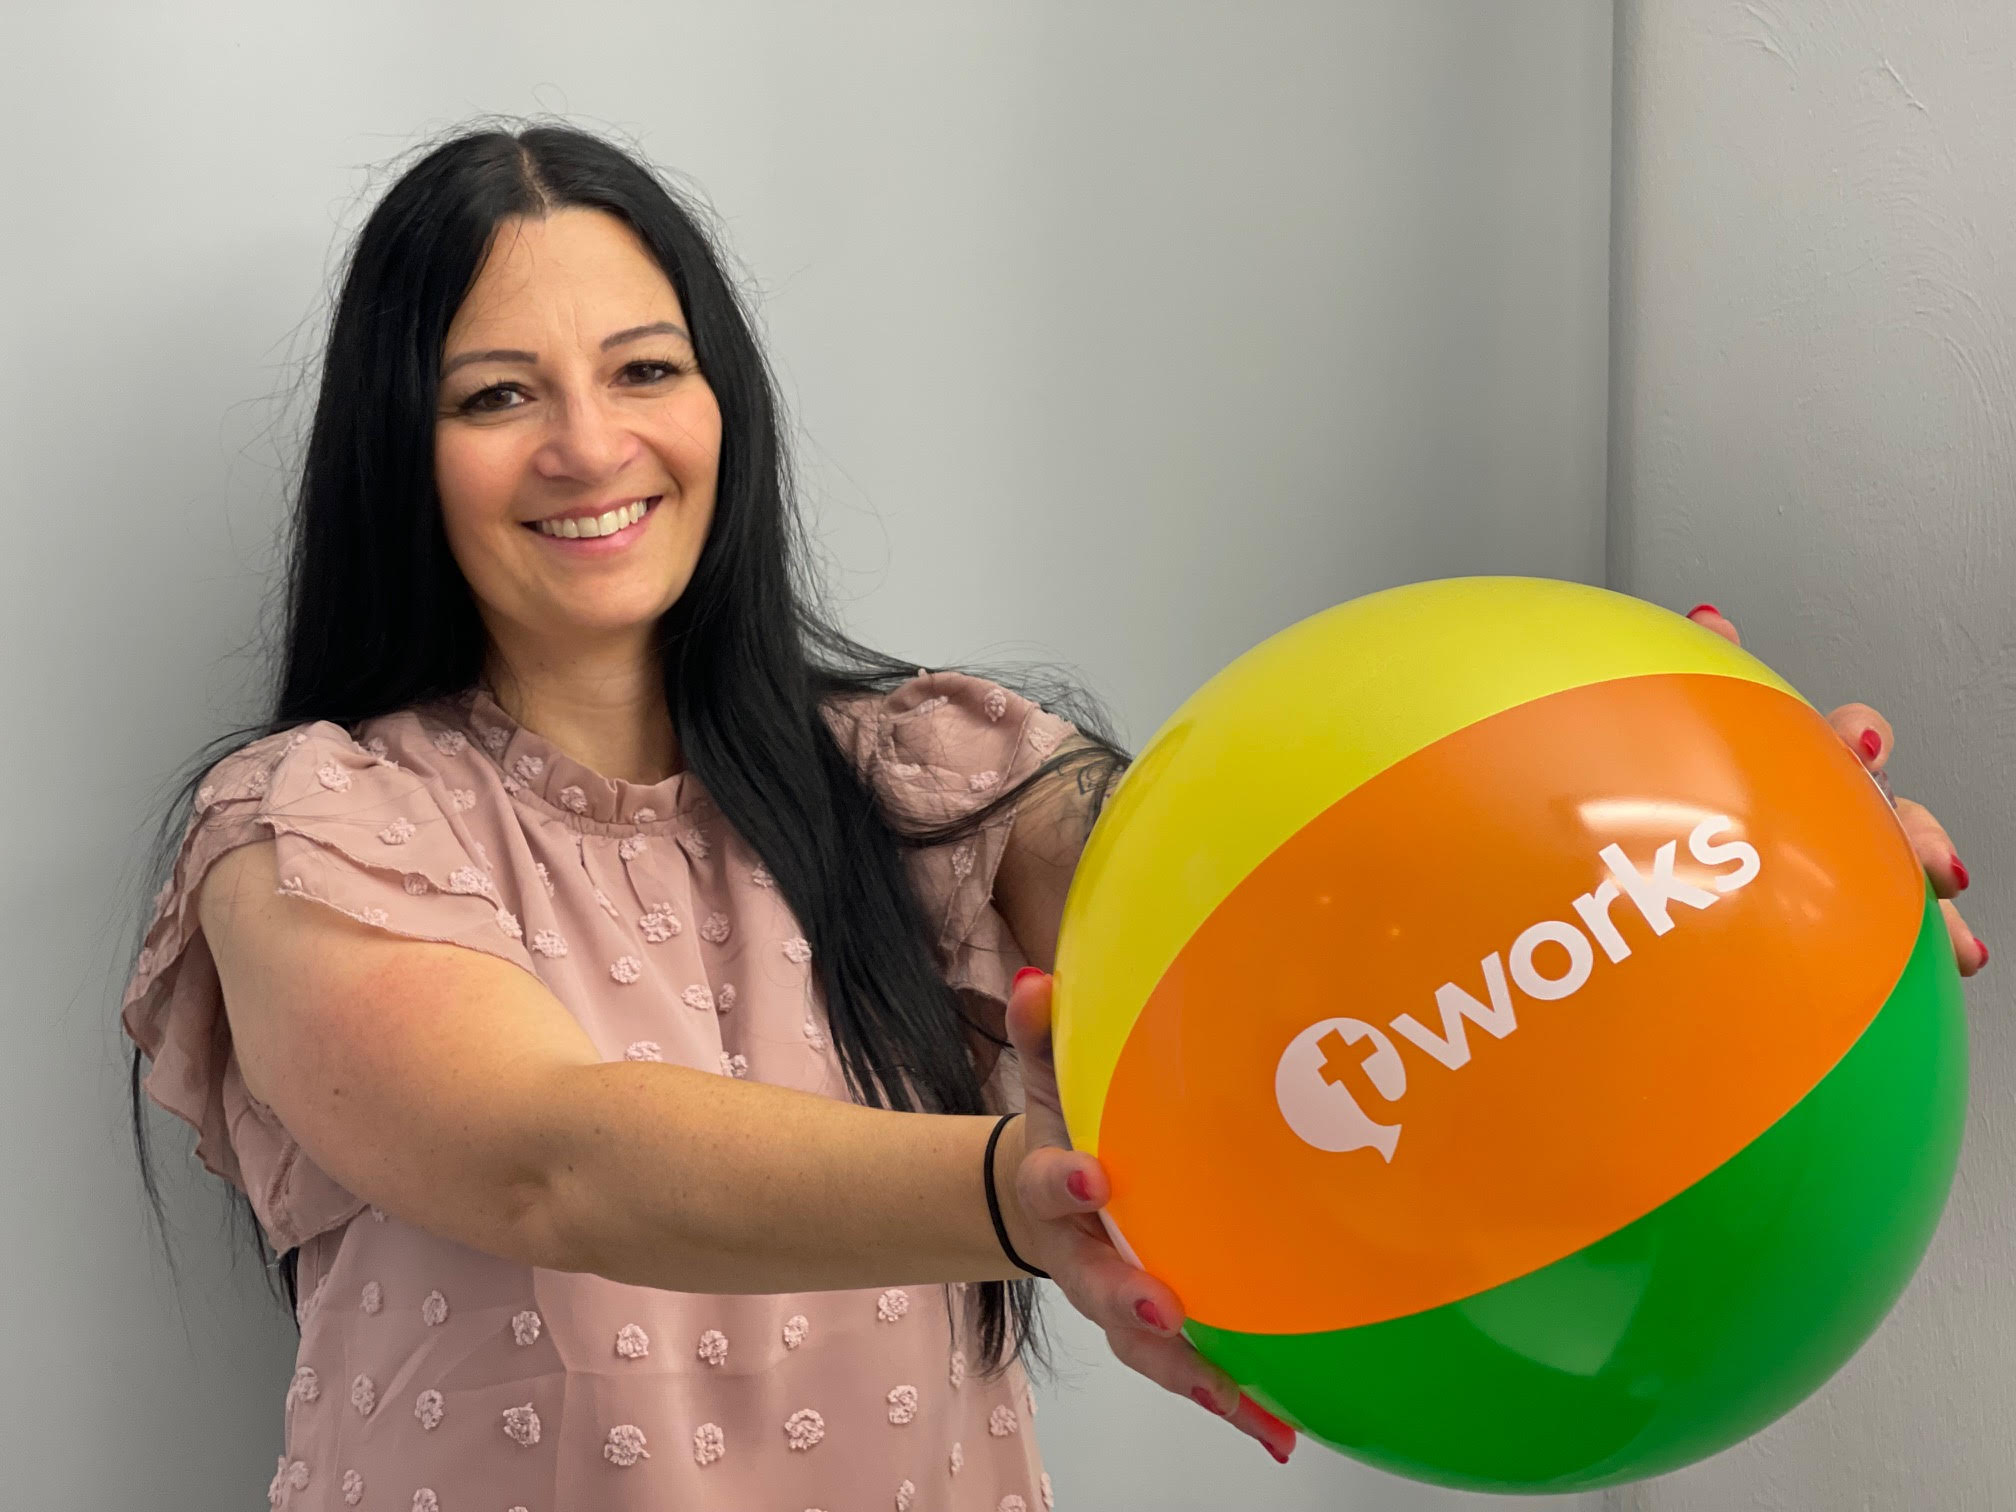 Linda Sidera with t'works giveaways